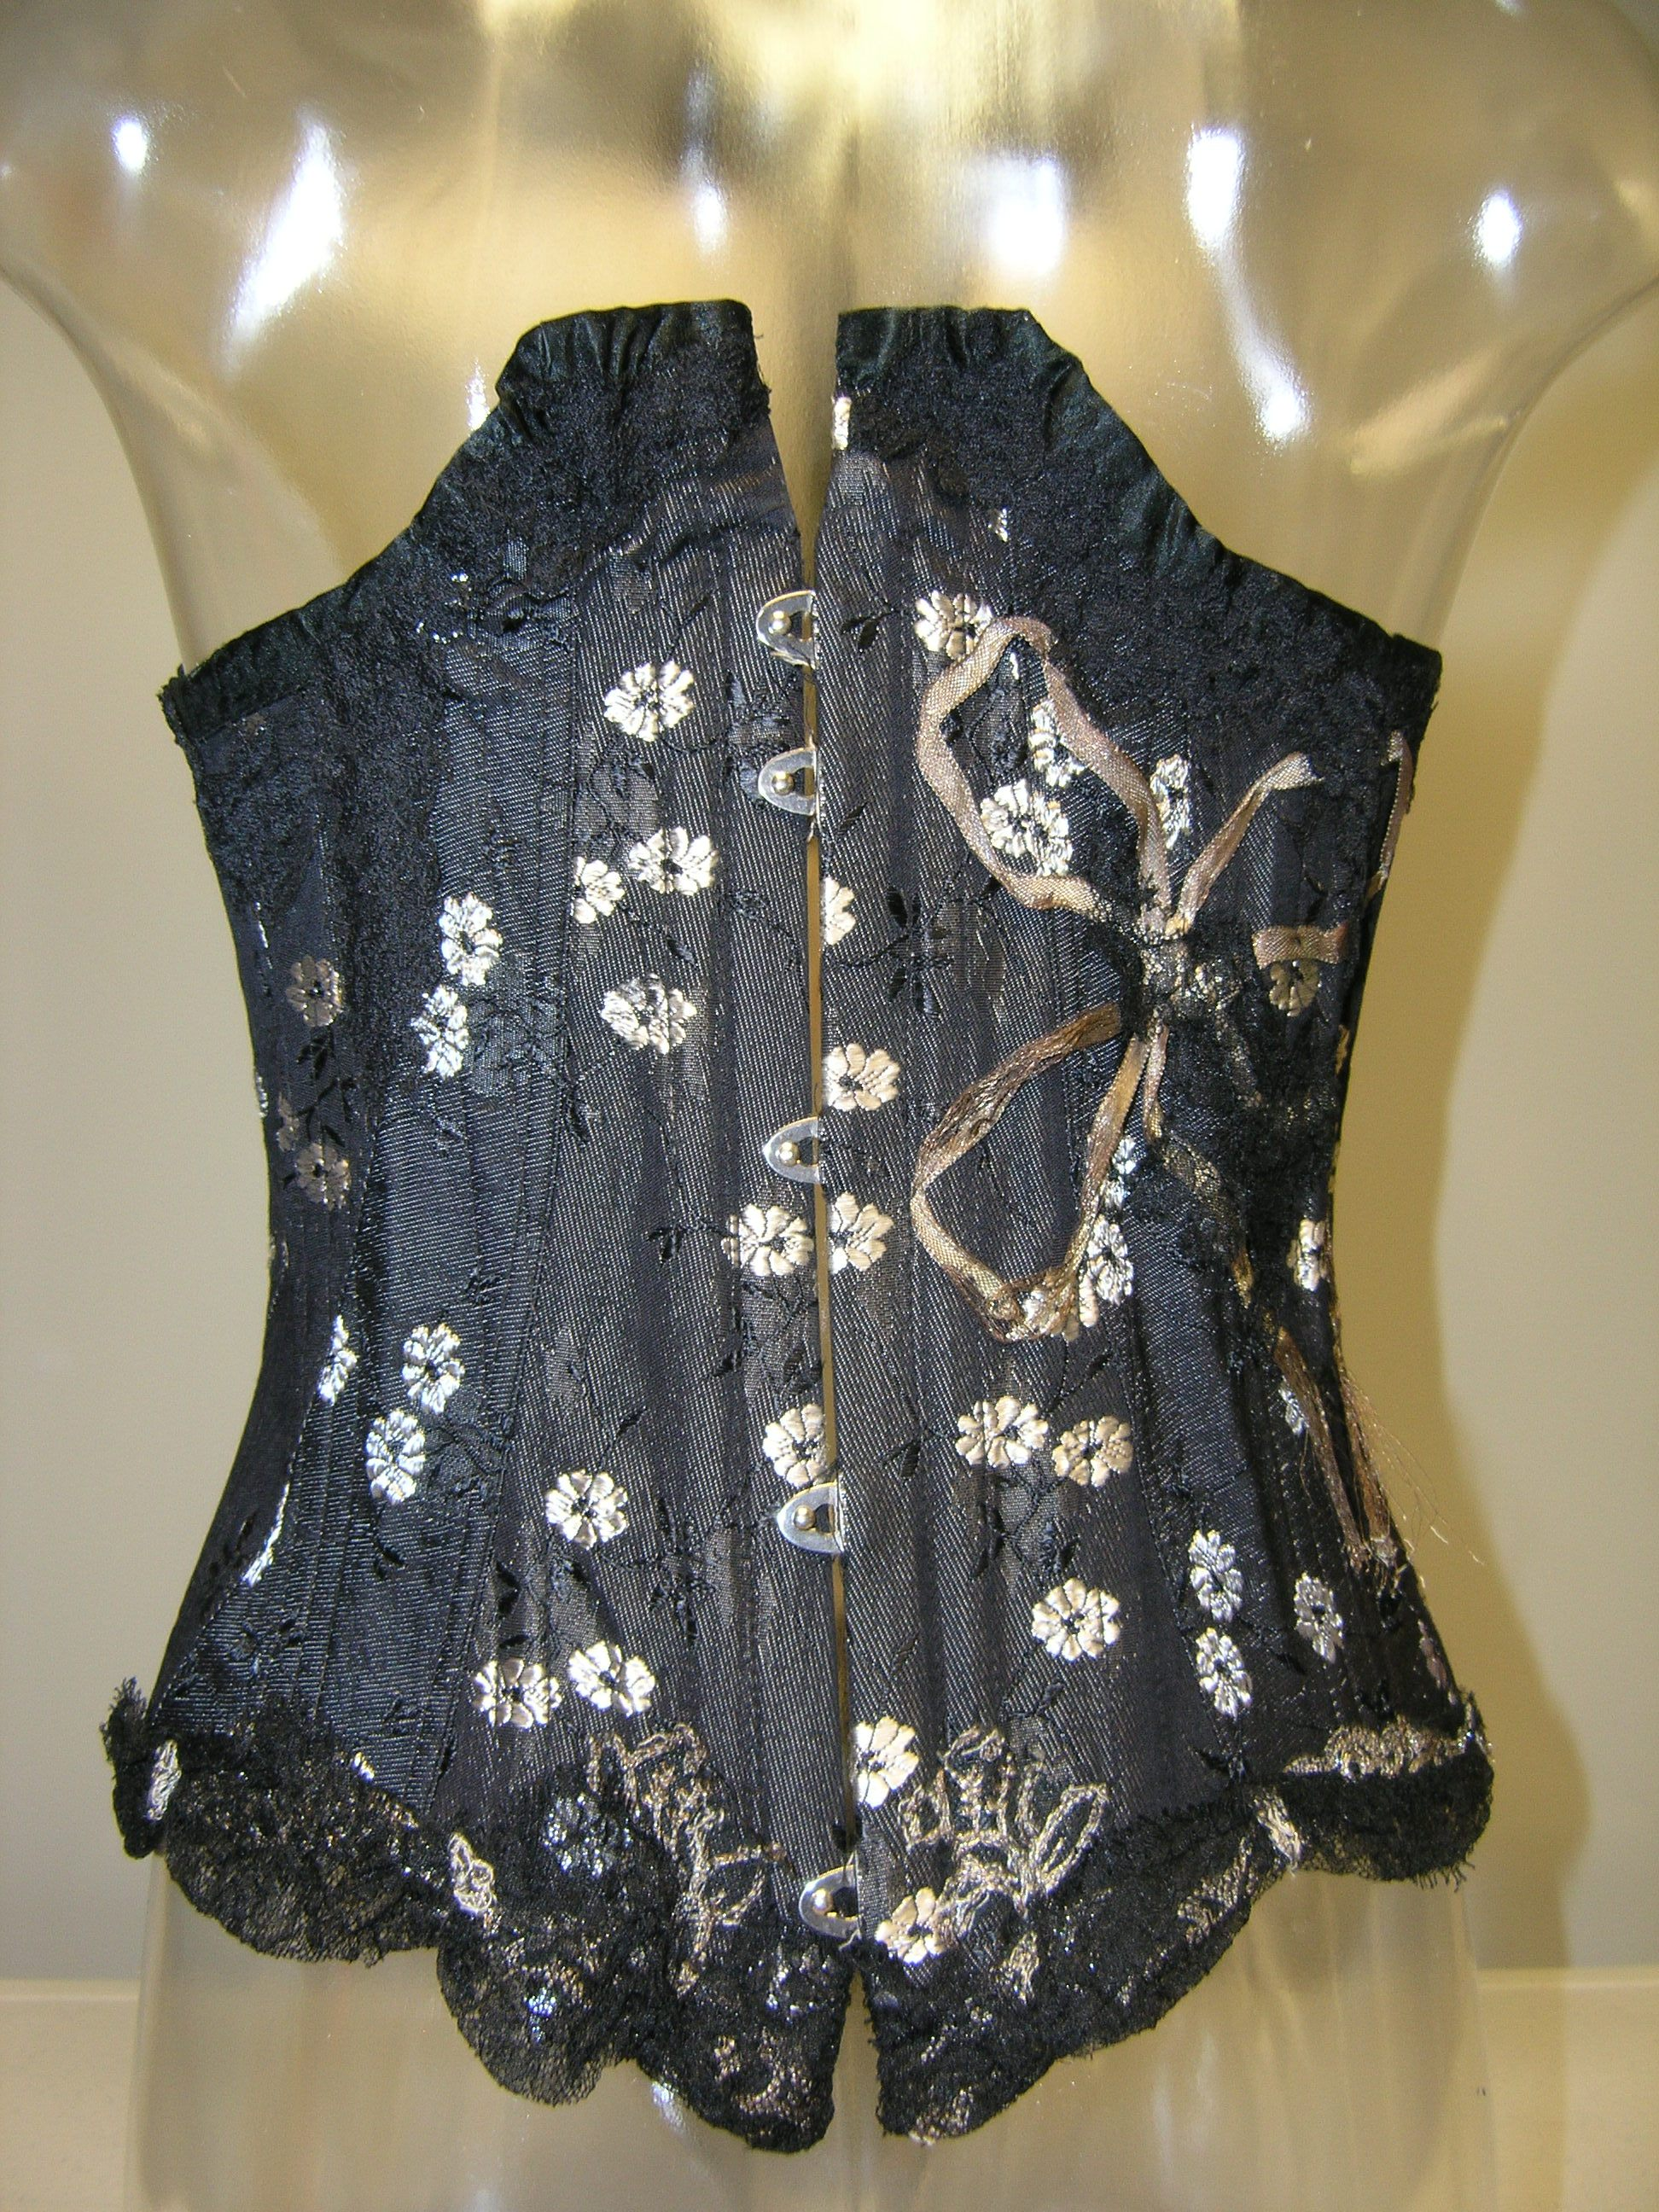 Mae West Corset. c. 1945. Gift of Kevin Thomas in Memory of Dolly Dempsey. FIDM Museum Collection. Copyright FIDM Museum.